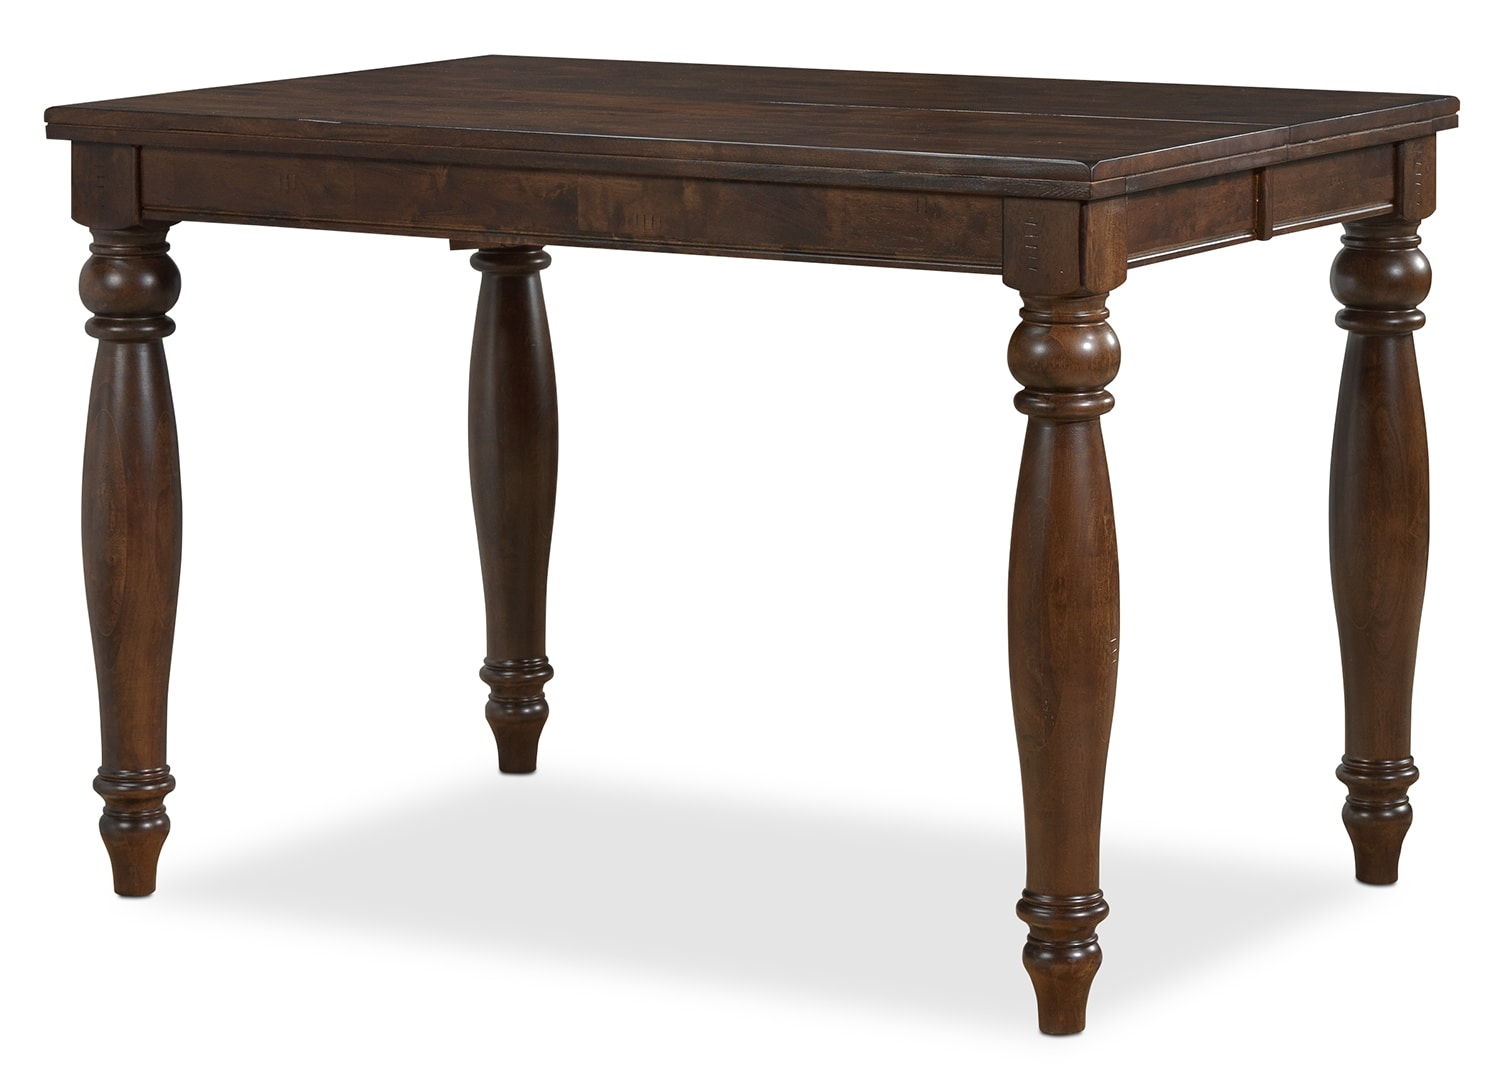 Dining Room Furniture - Kingstown Pub Table - Chocolate